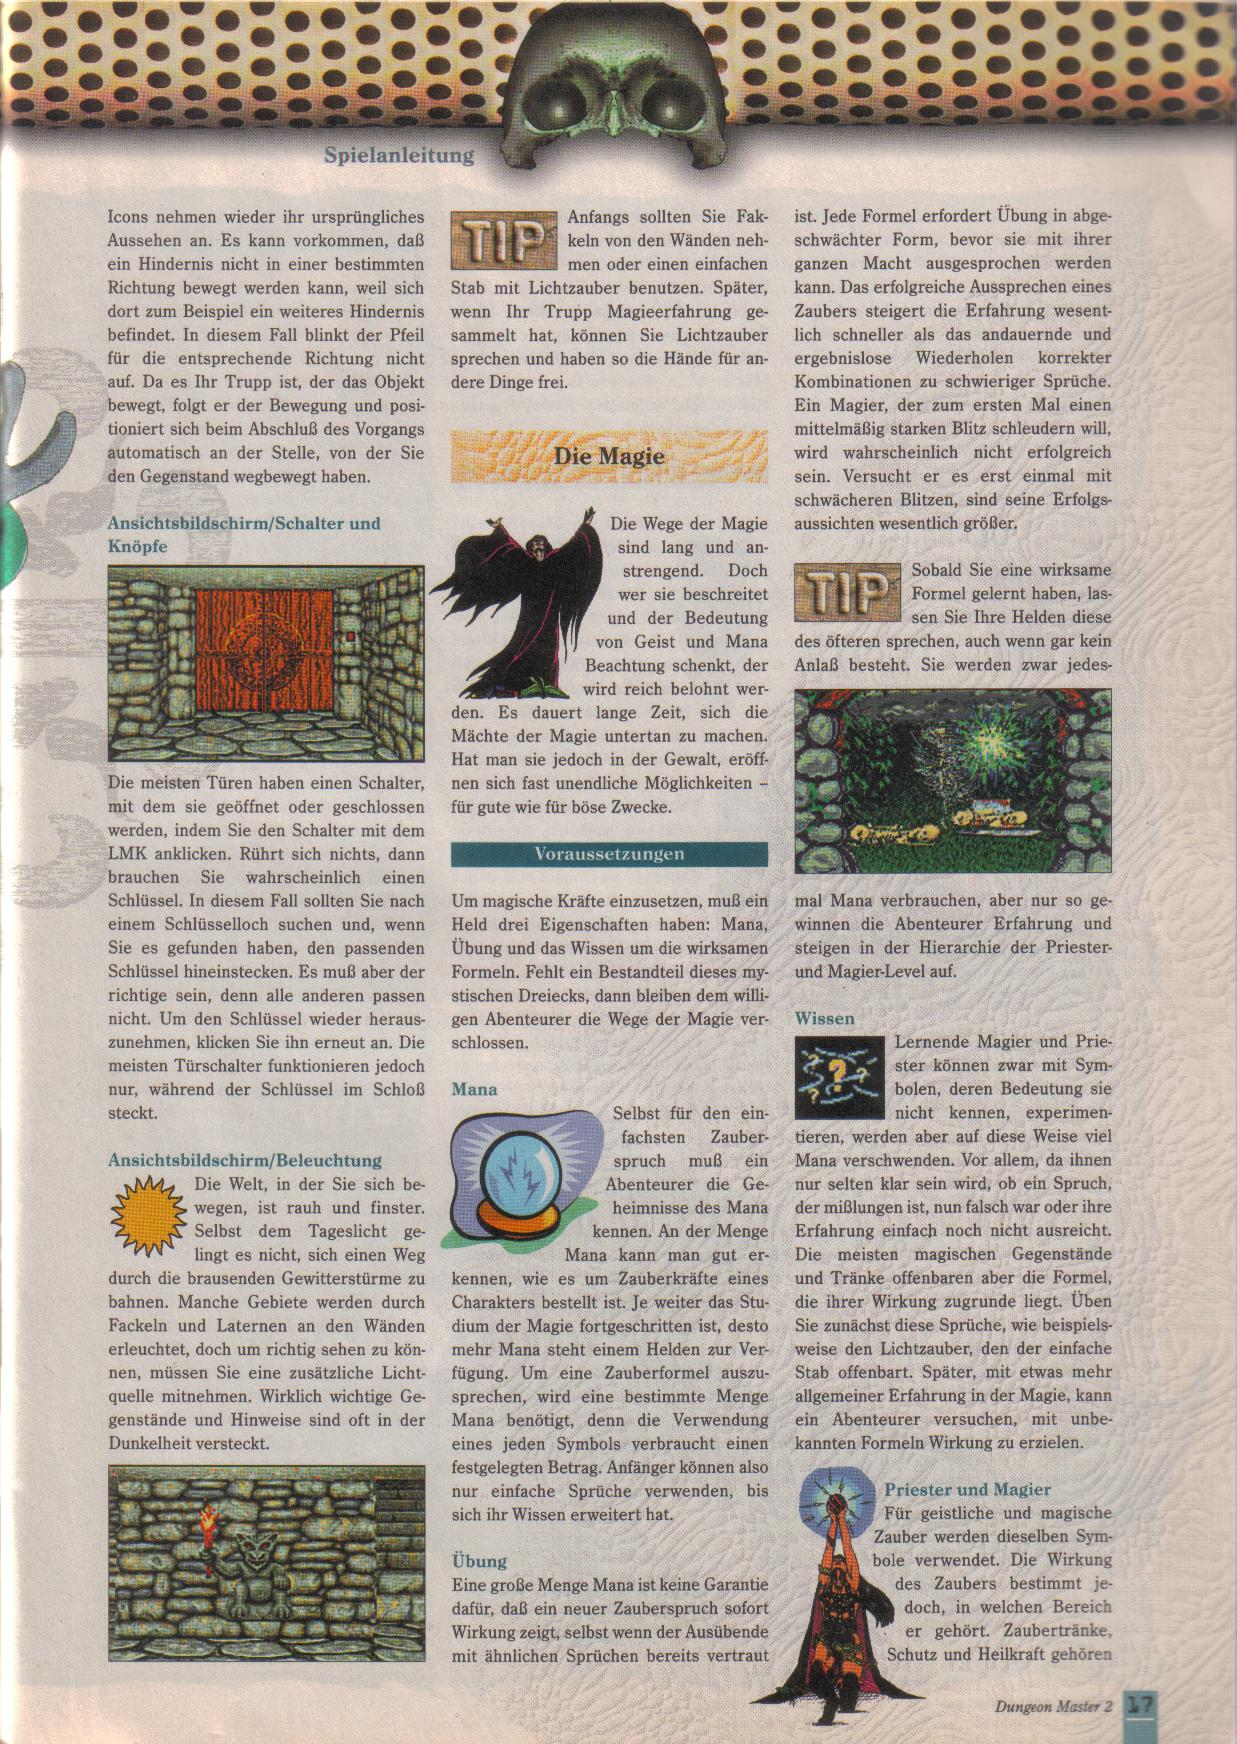 Dungeon Master II for PC (German, Best Seller Games) Page 17